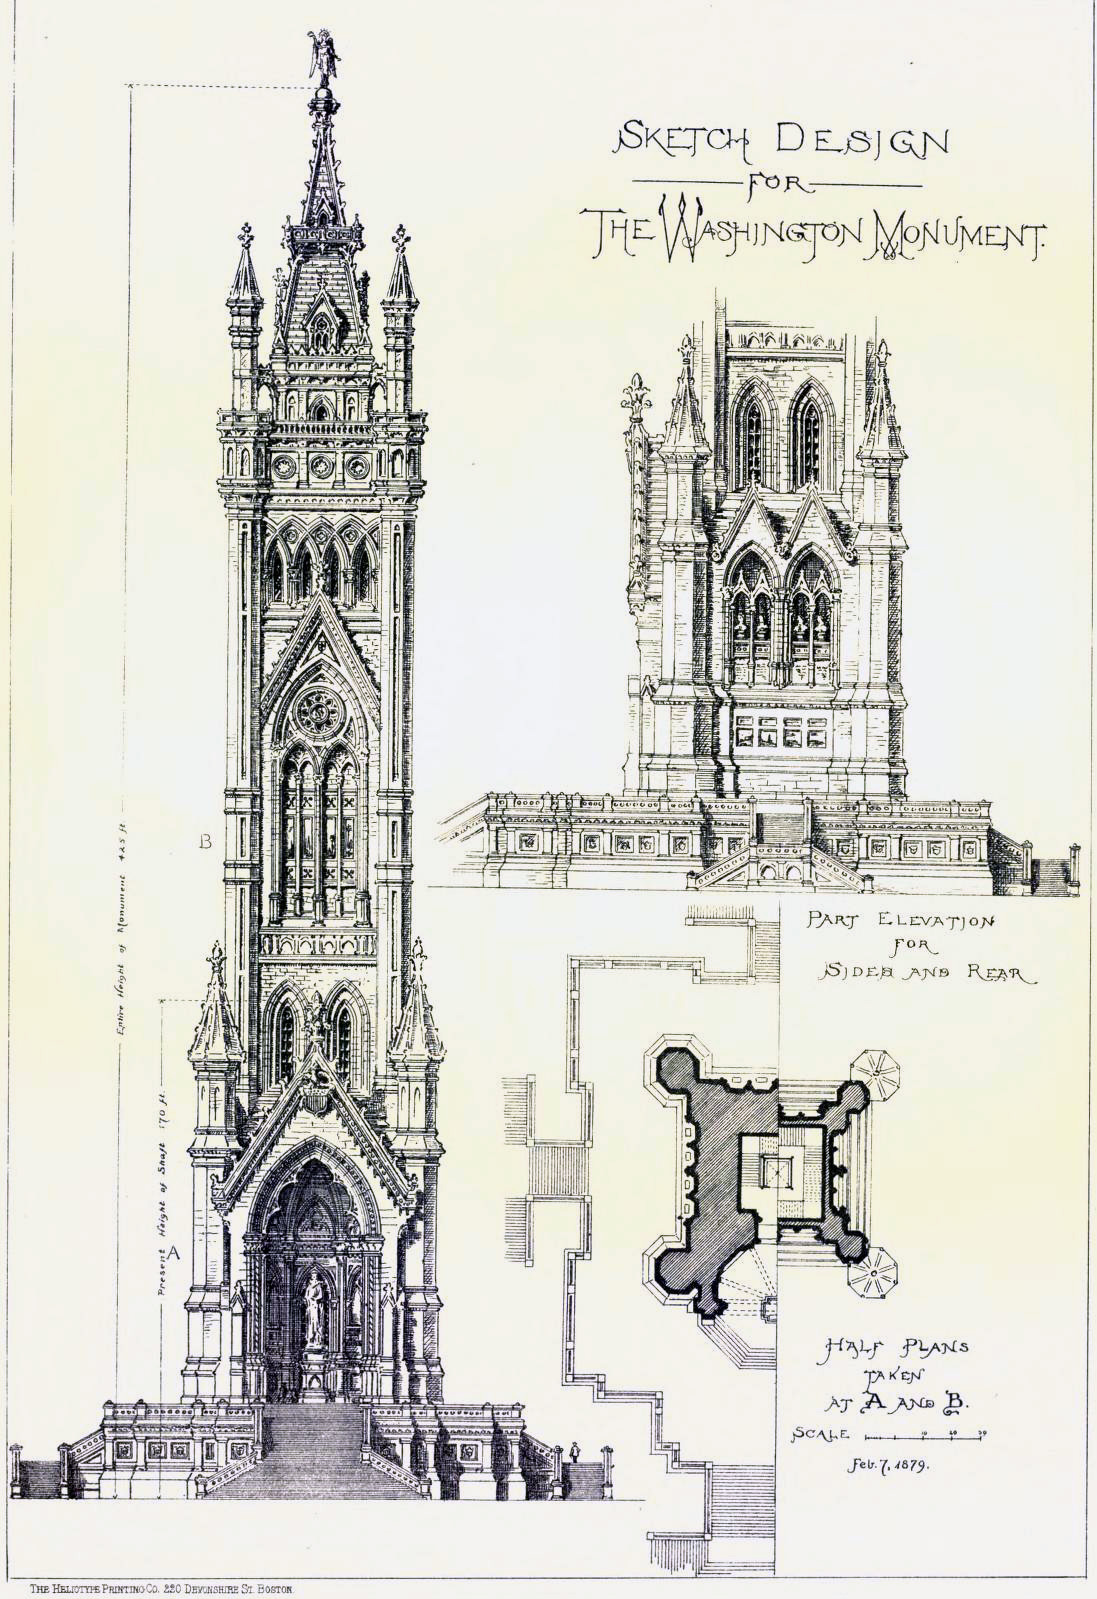 Design proposal for the Washington Monument, Washington D.C.